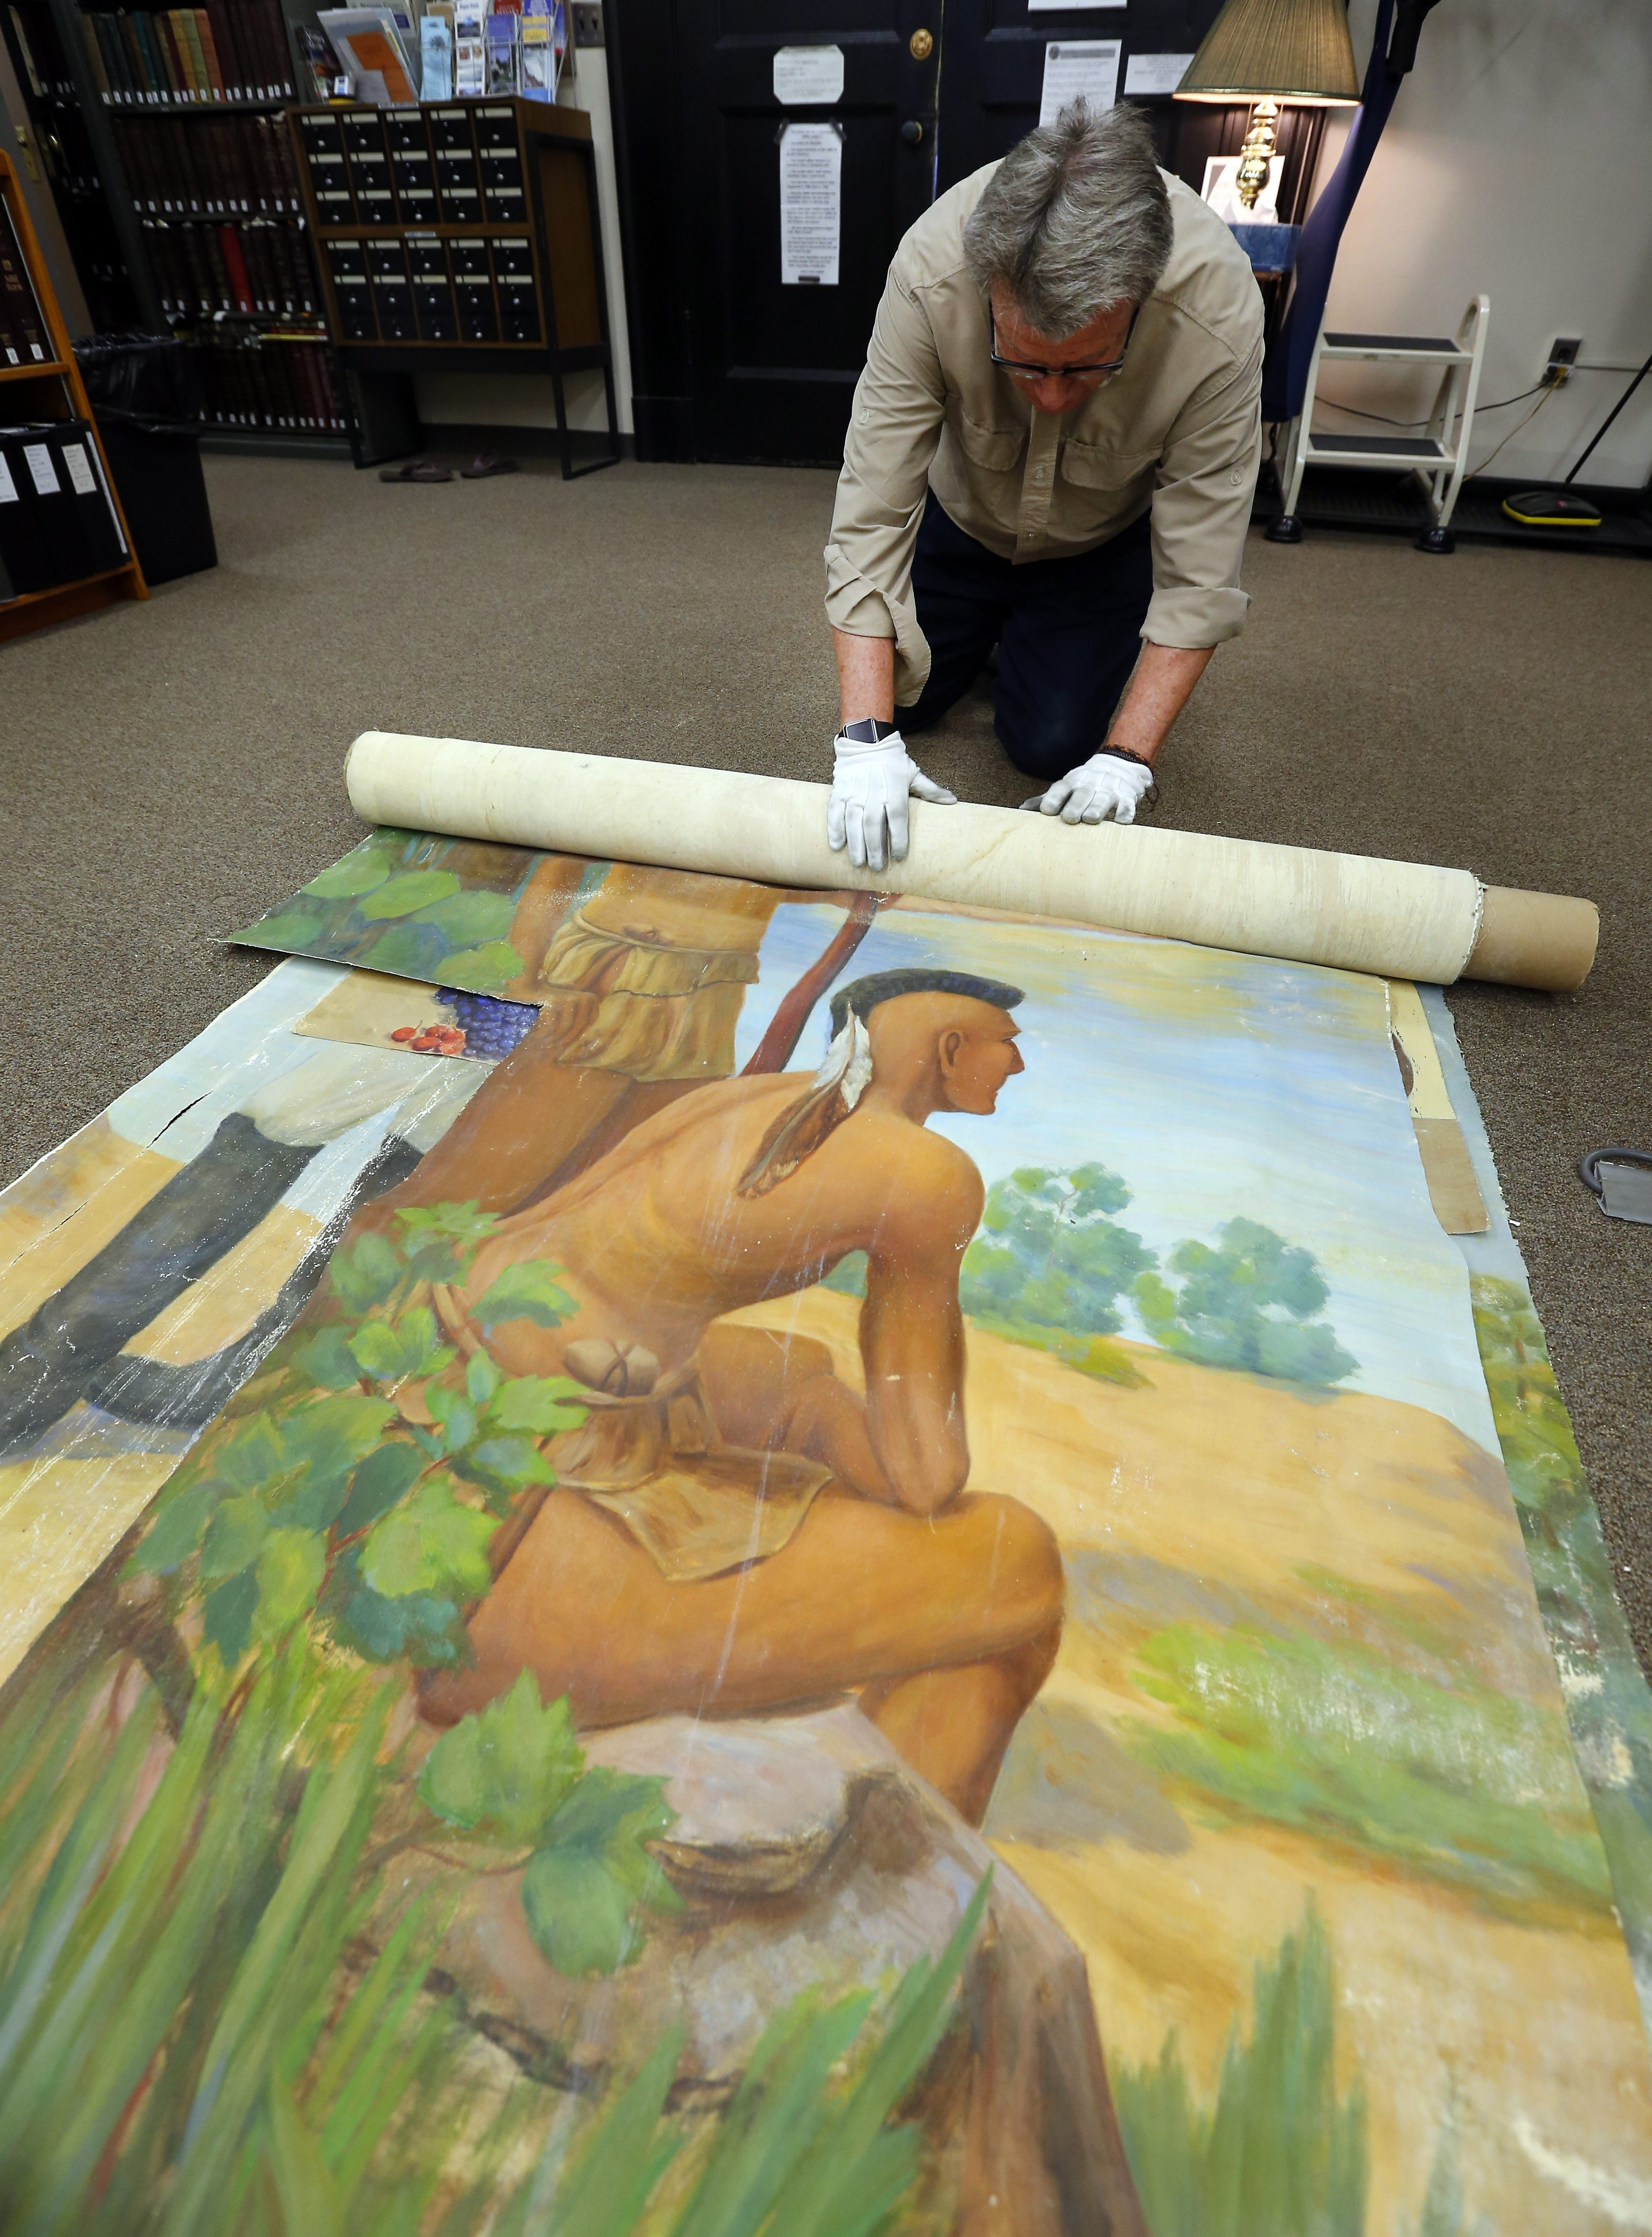 Niagara County Deputy Historian Ron Cary rolls out pieces of murals that were painted by Emil Strub and discovered during a renovation of the Mount View Assisted Living Facility in Lockport.